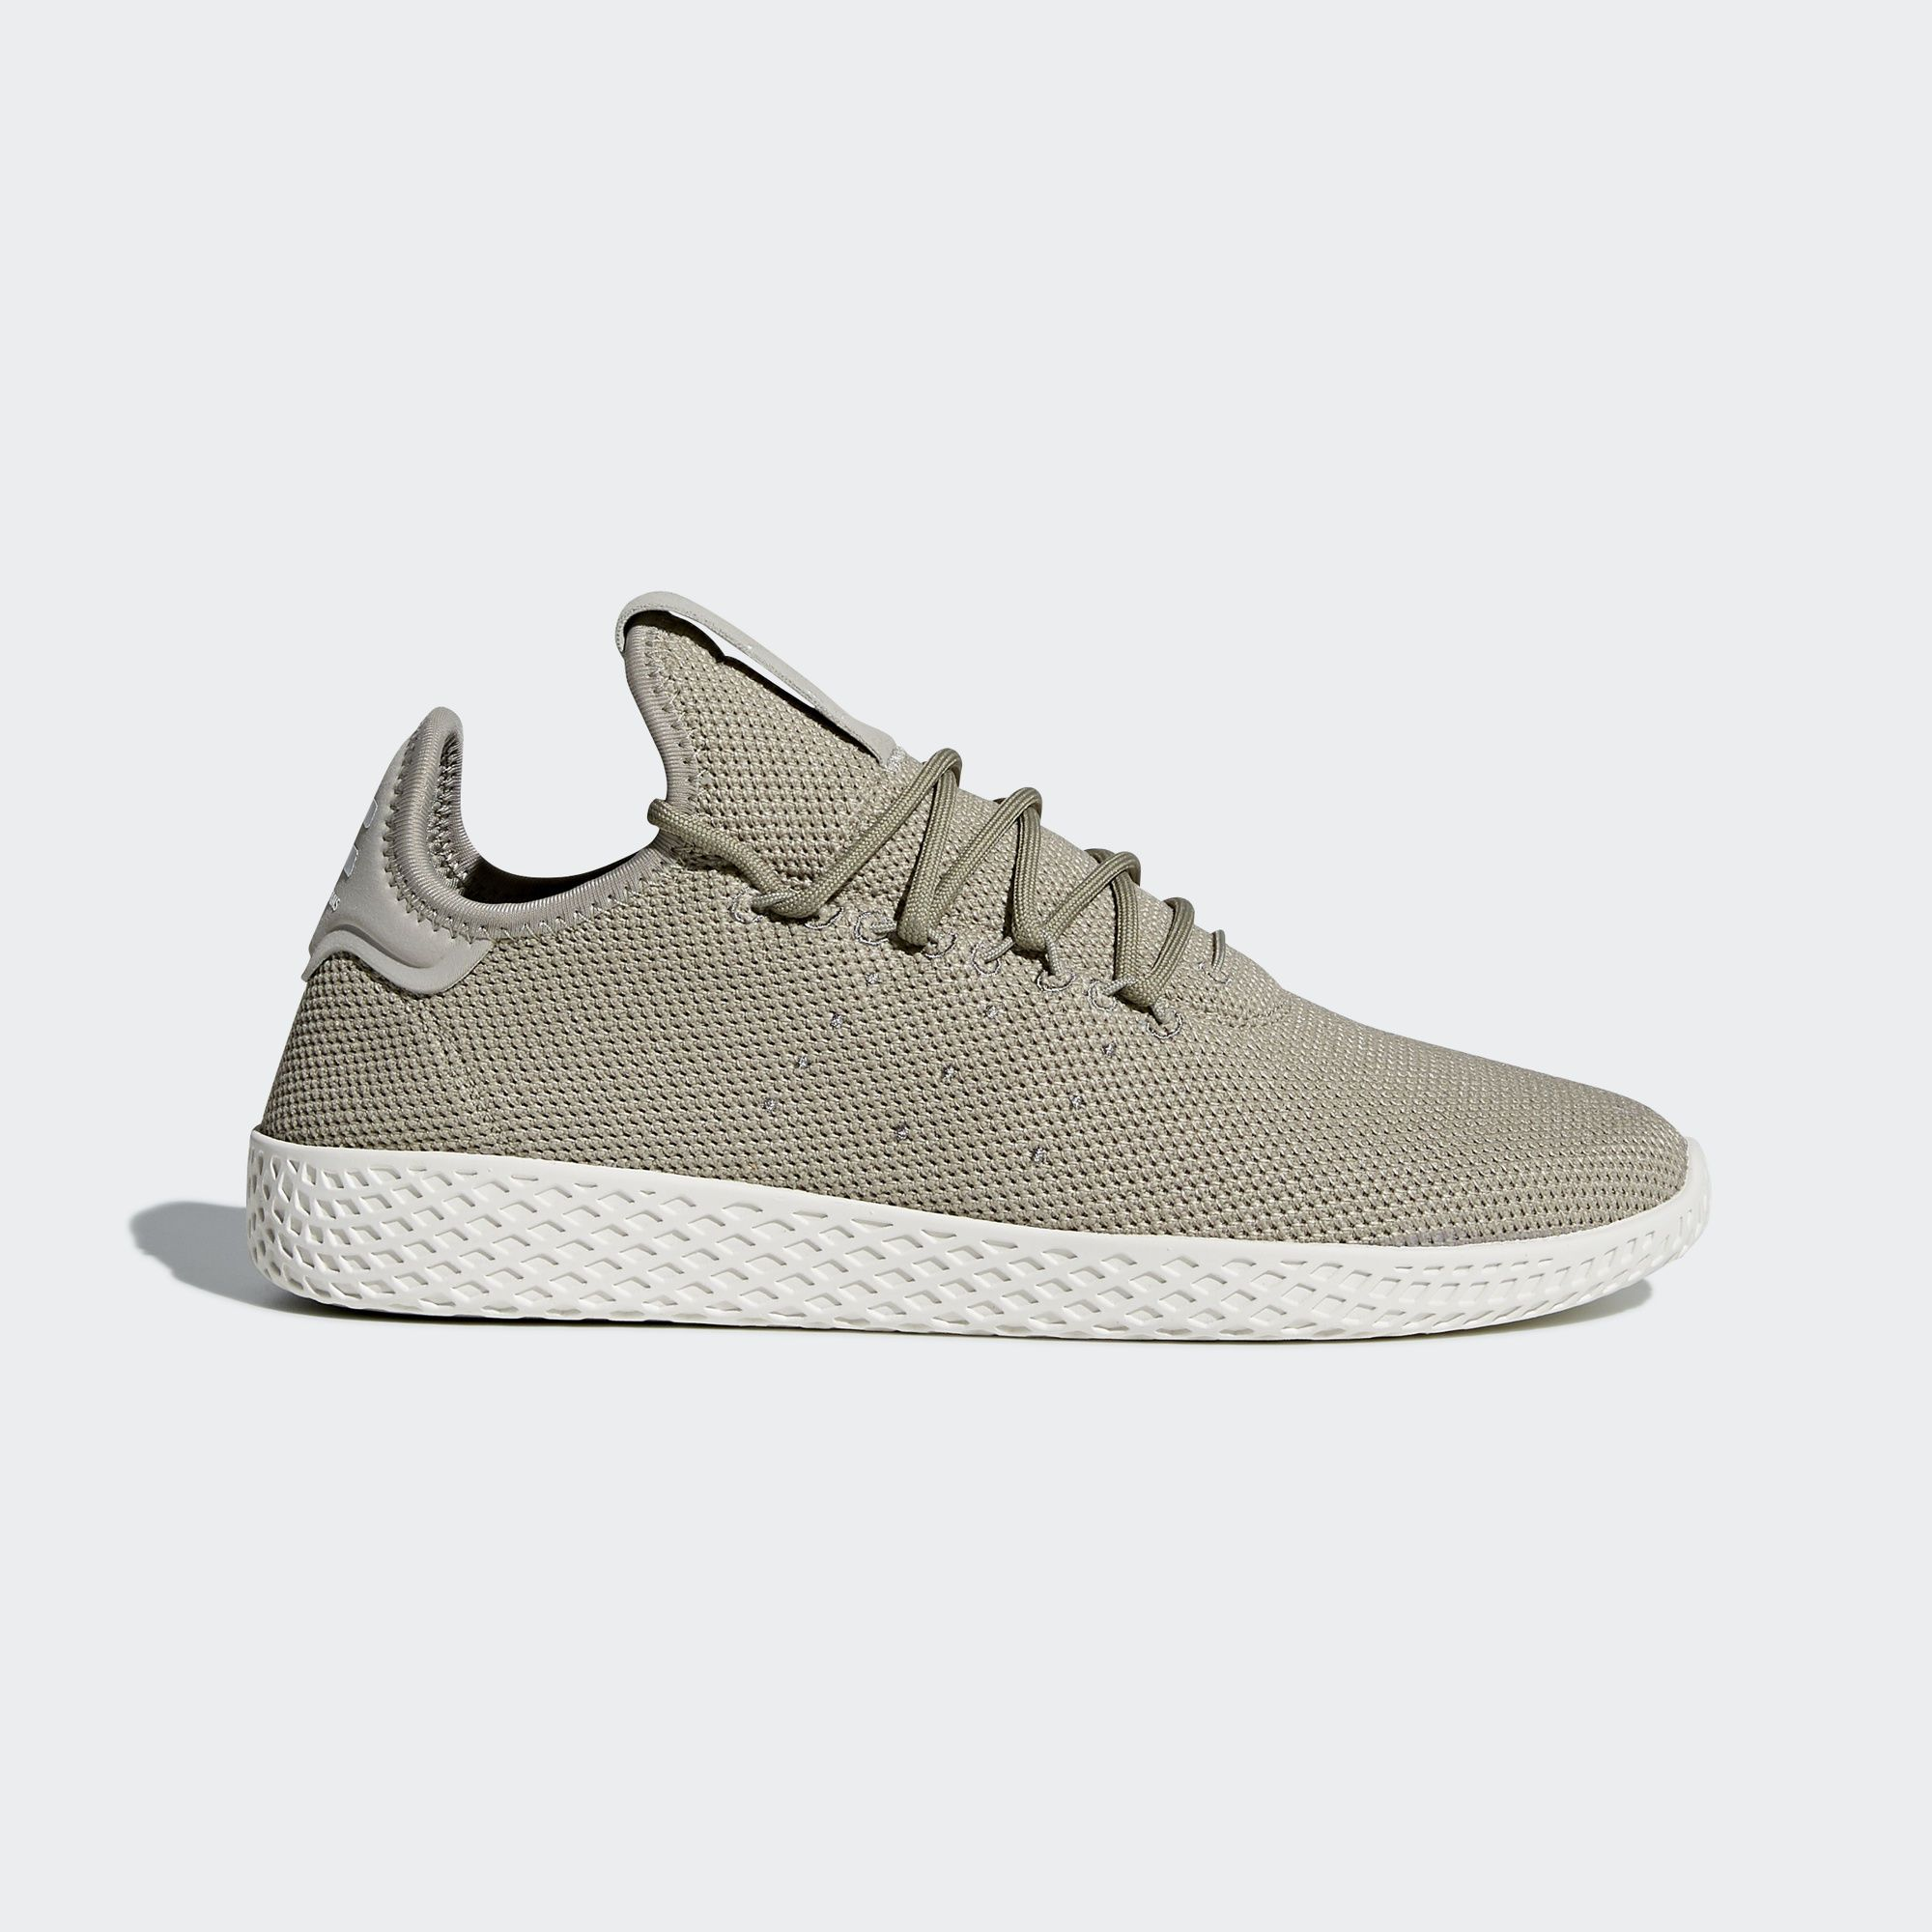 A Collaboration Between Adidas Originals And Pharrell Williams These Men S Shoes Were Insp White Leather Tennis Shoes Adidas Pharrell Williams Williams Tennis